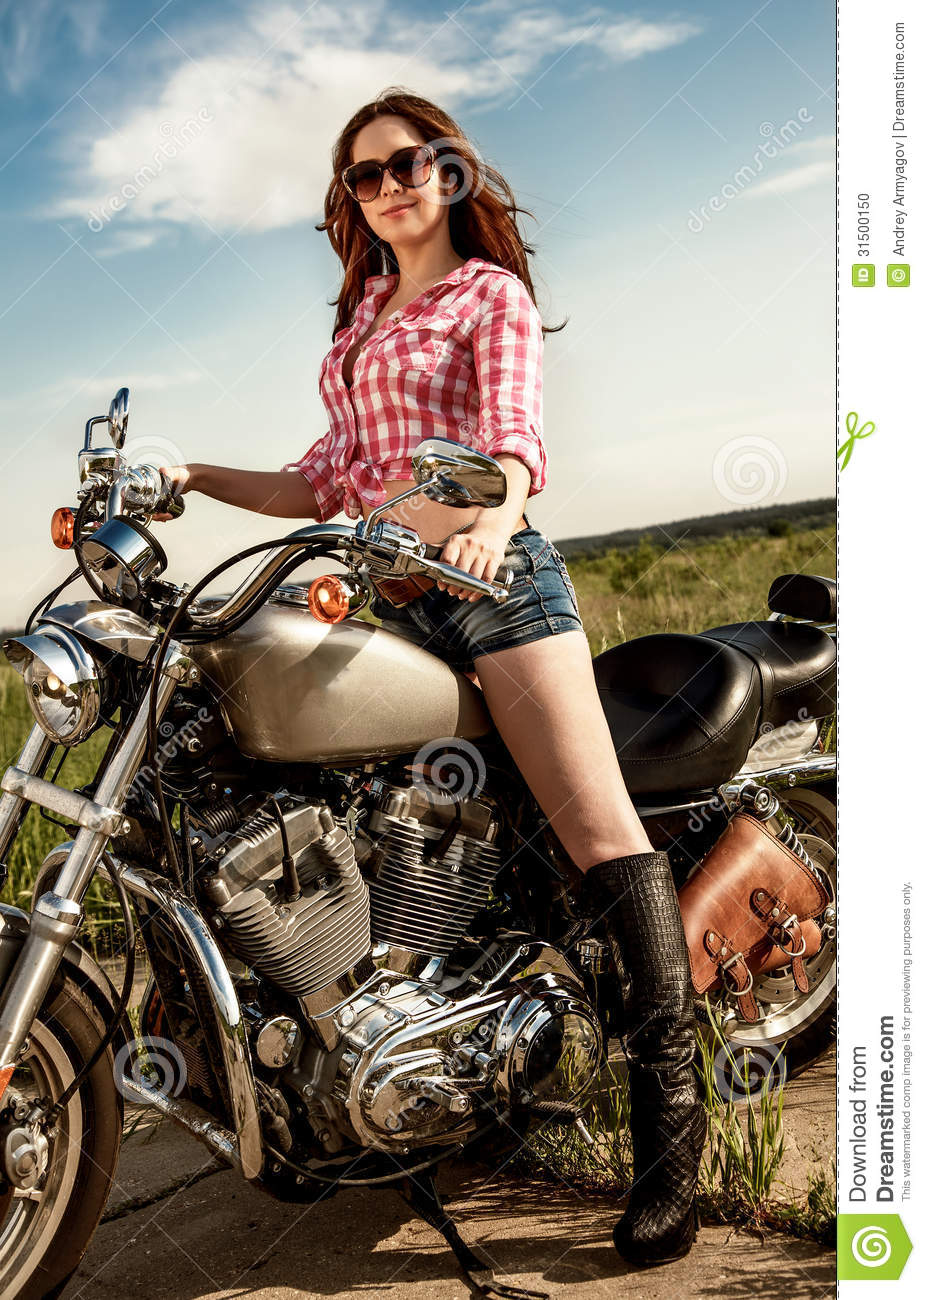 Biker Girl Sitting On Motorcycle Stock Photo Image Of Girl Motorcycle 31500150